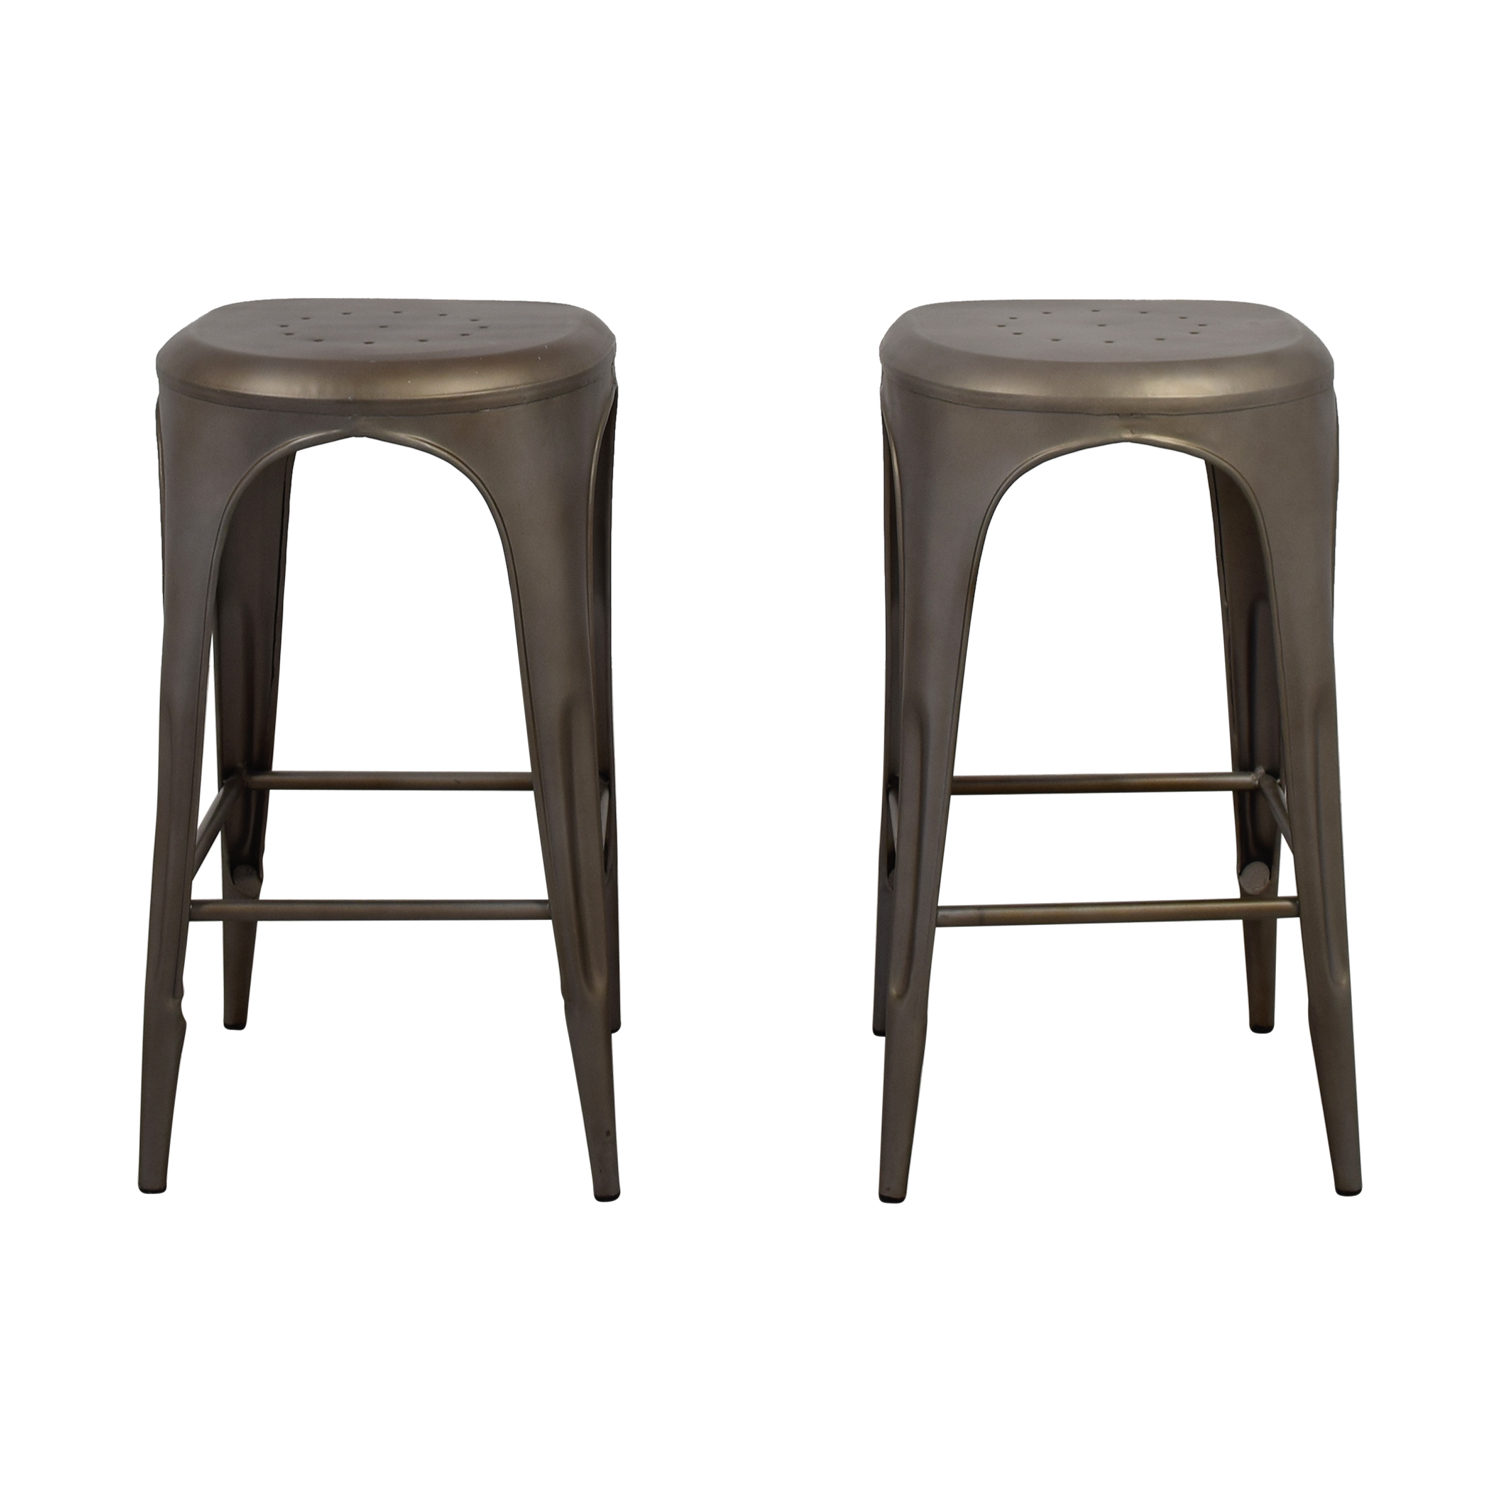 Restoration Hardware Remy backless stool (gunmetal gray) Restoration Hardware Remy Backless Barstools Brown silver